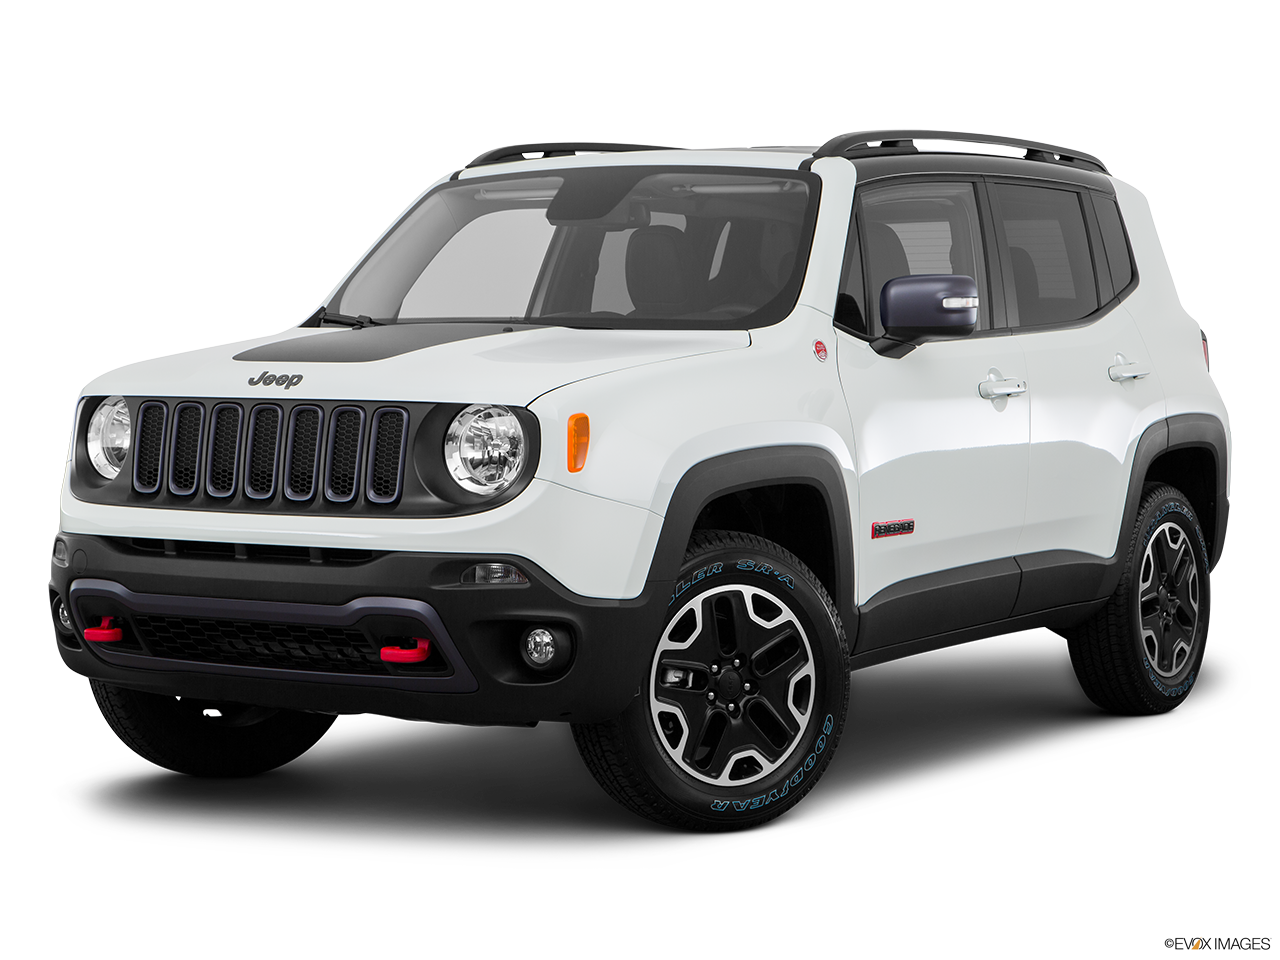 Test Drive A 2016 Jeep Renegade at Cherry Hill Dodge Chrysler Jeep RAM in Cherry Hill